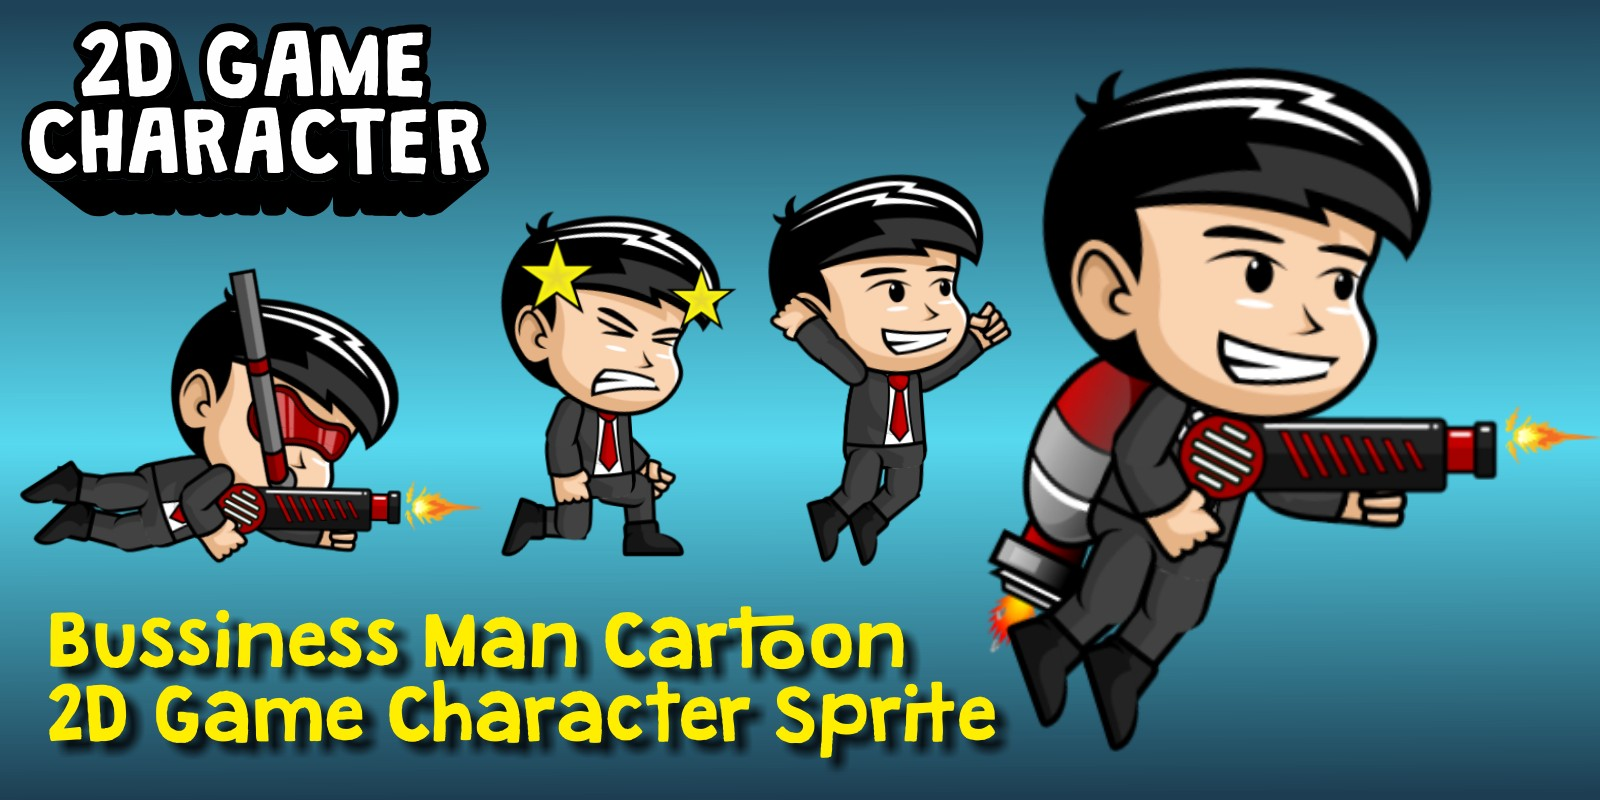 Bussiness Man Cartoon 2D Game Character Sprite